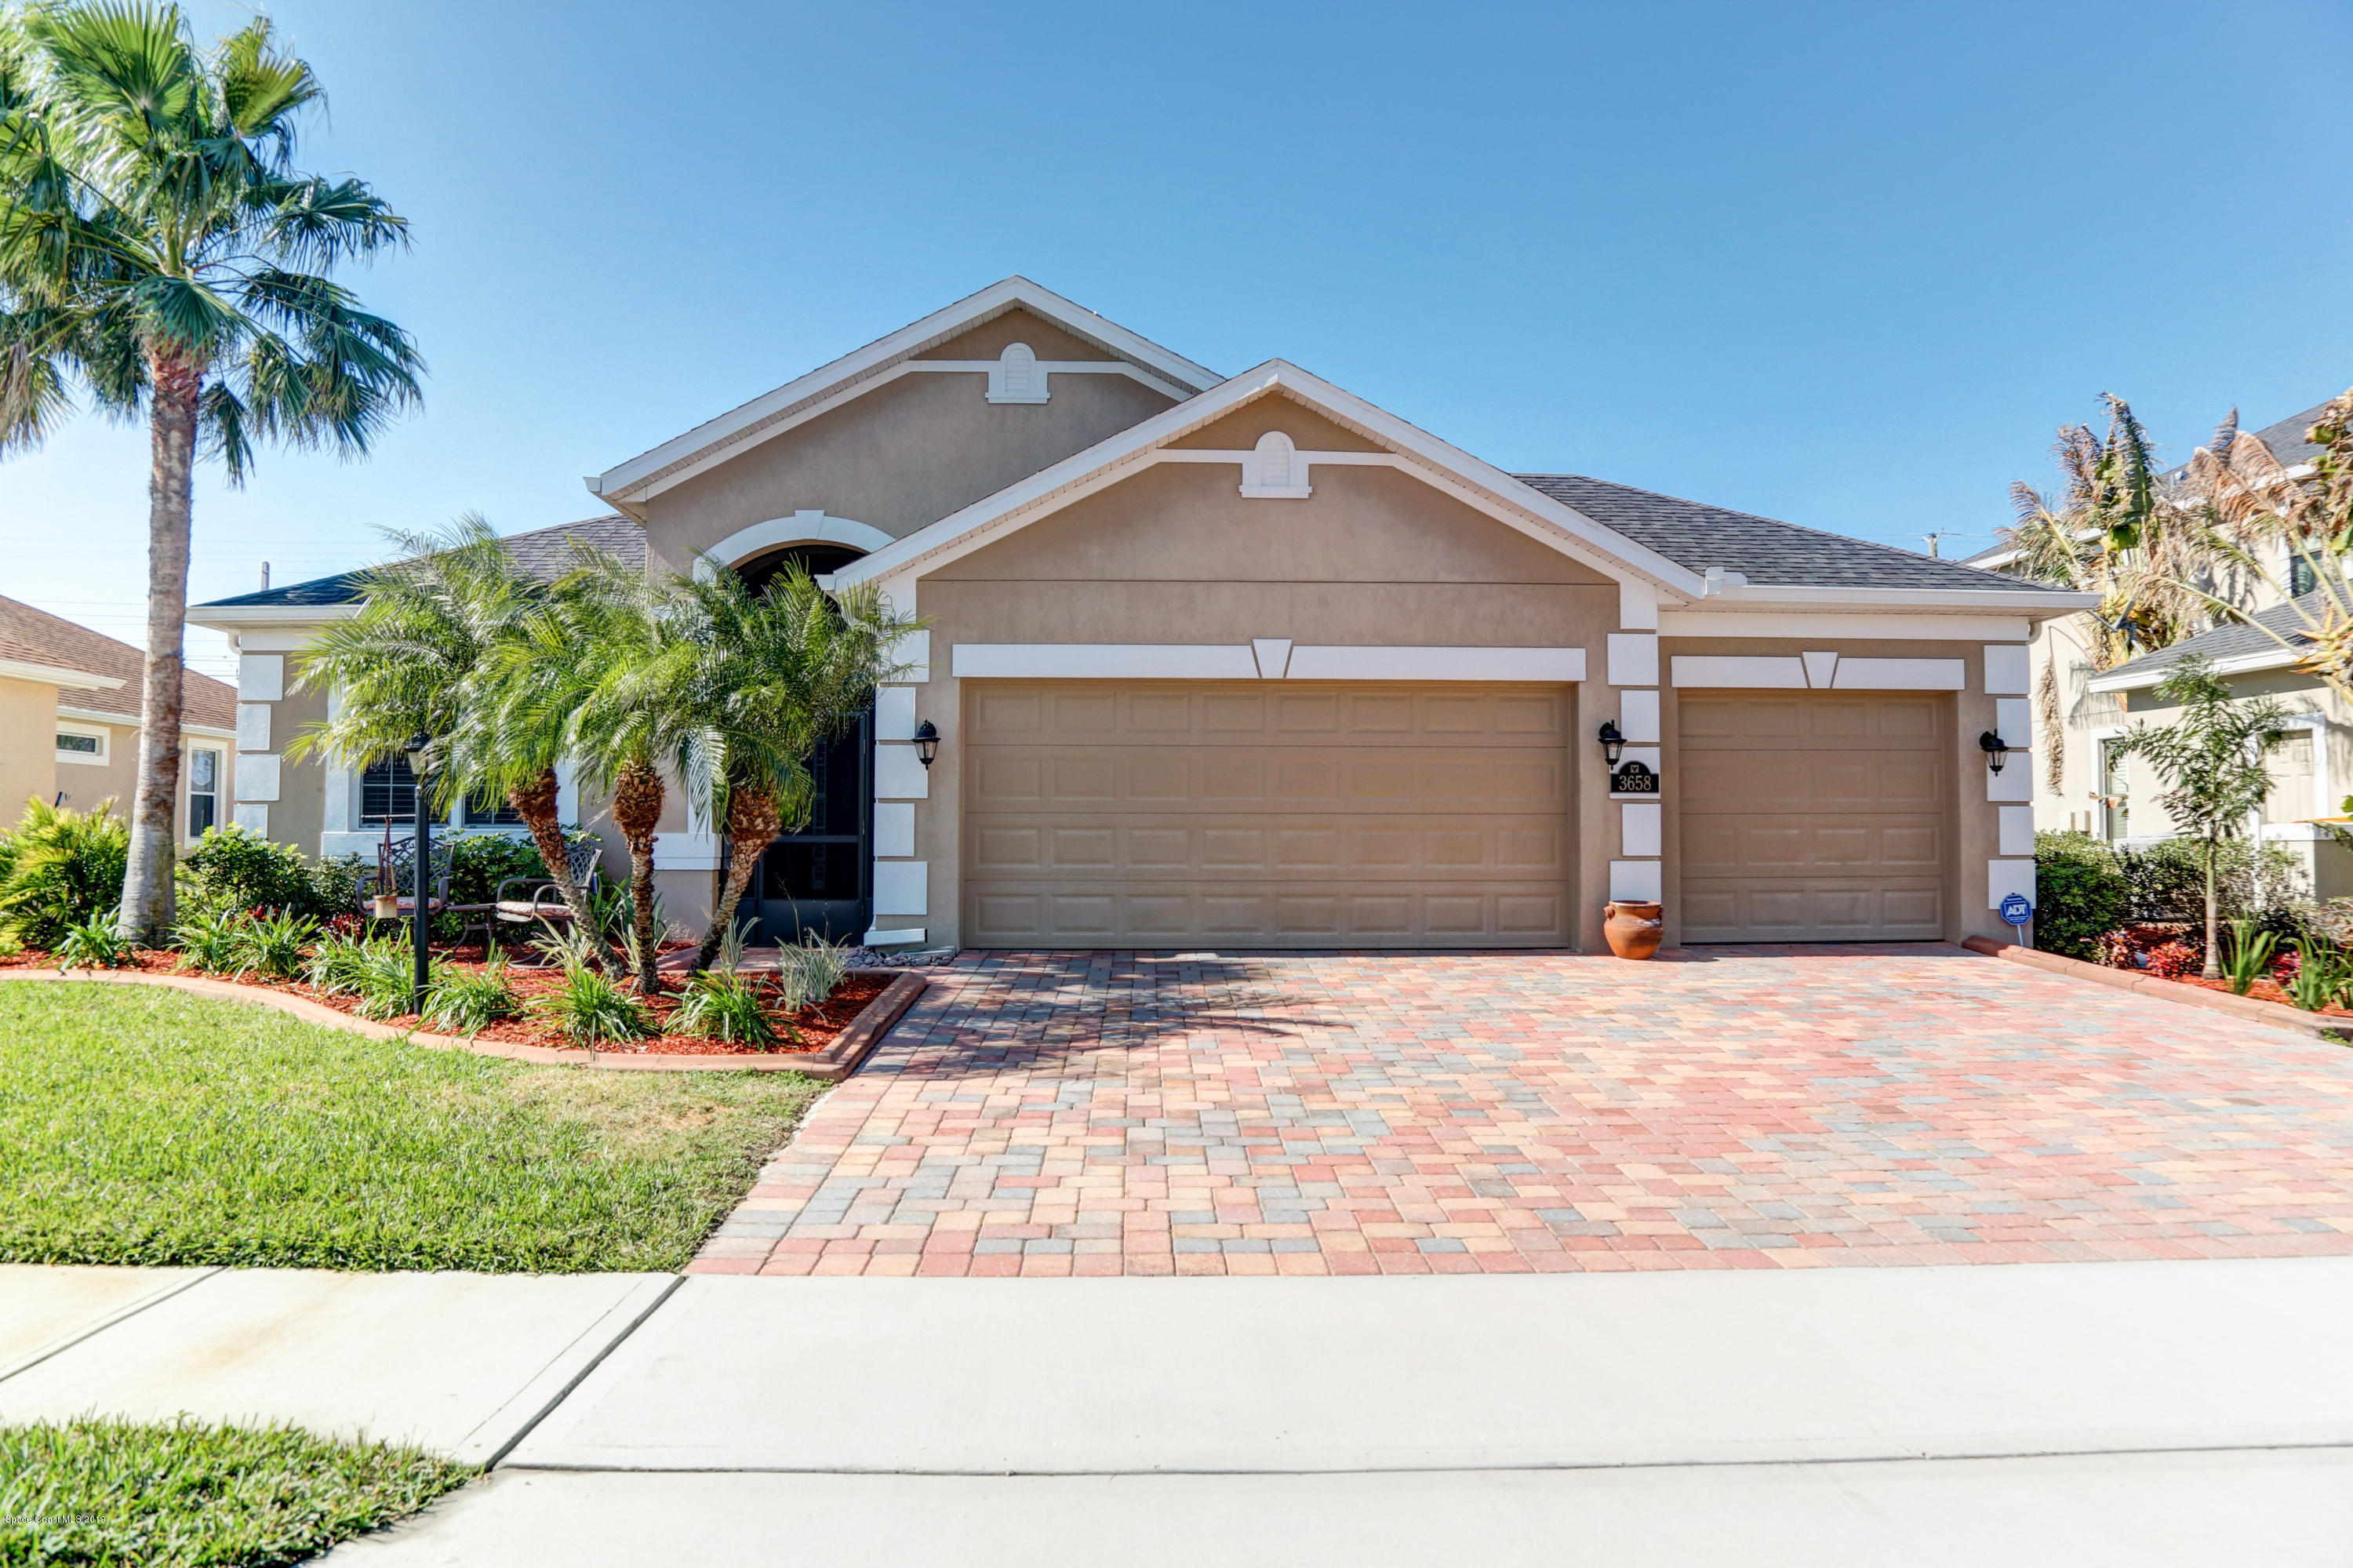 Single Family Homes for Sale at 3658 Hollisten Melbourne, Florida 32940 United States